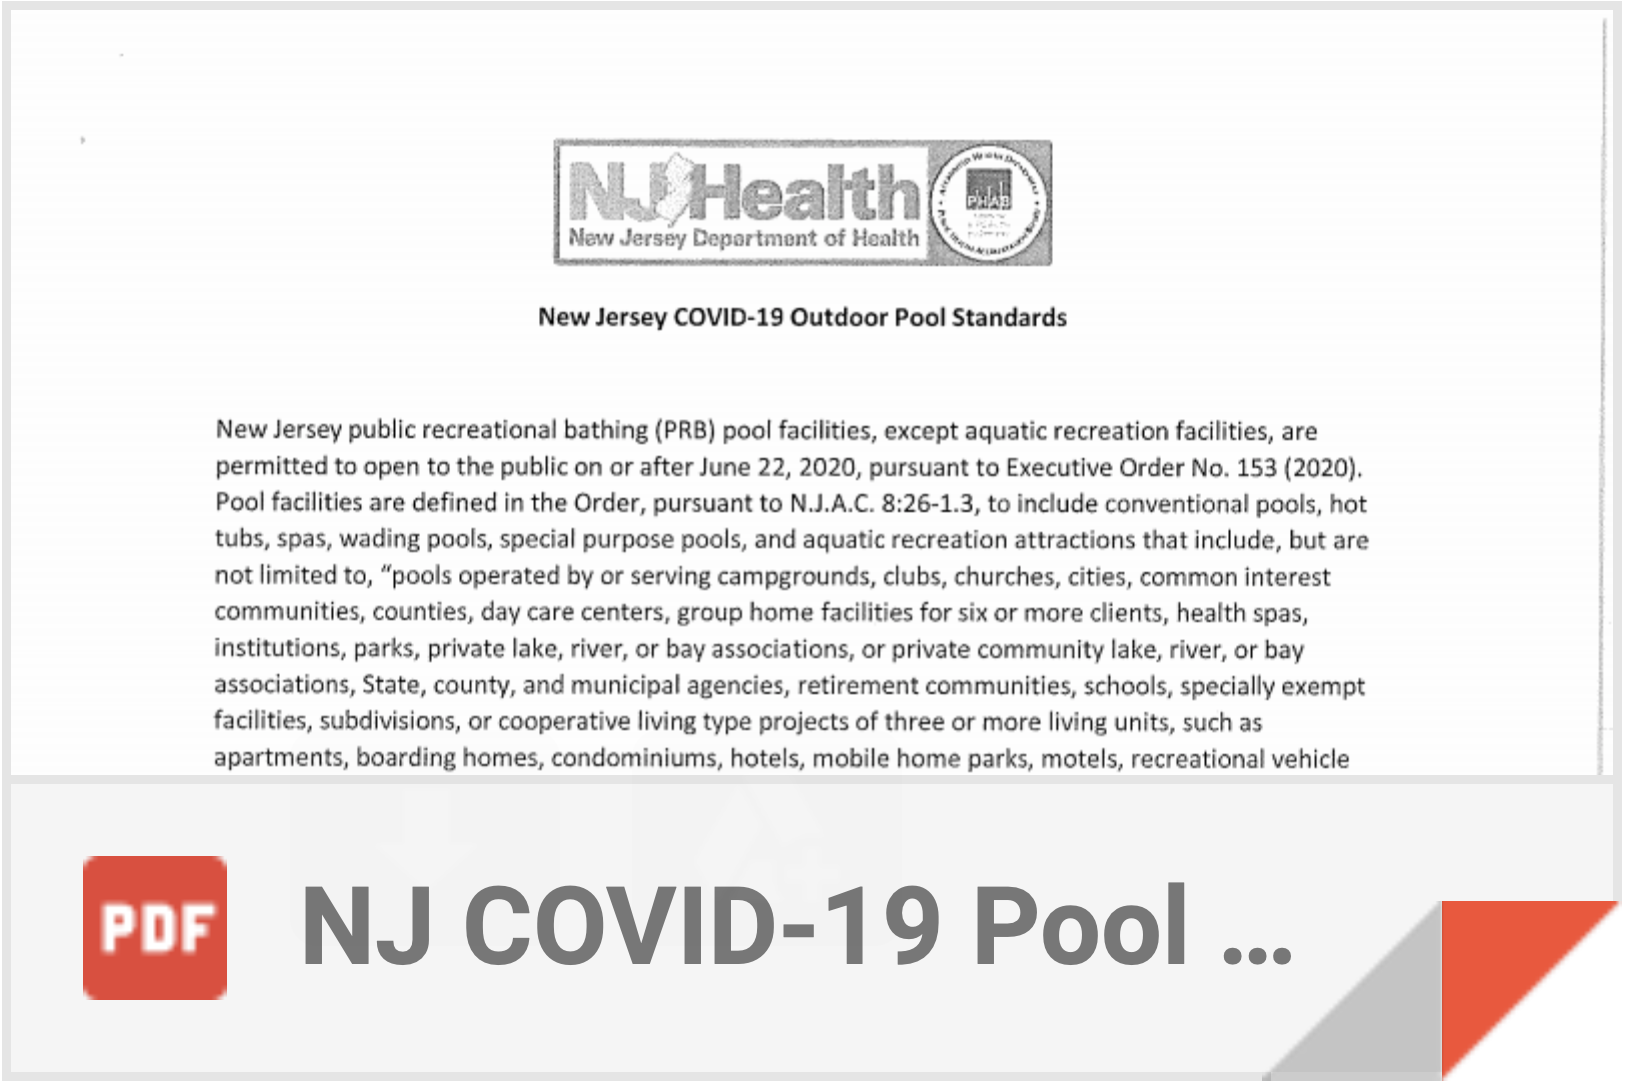 COVID-19 Pool Standards